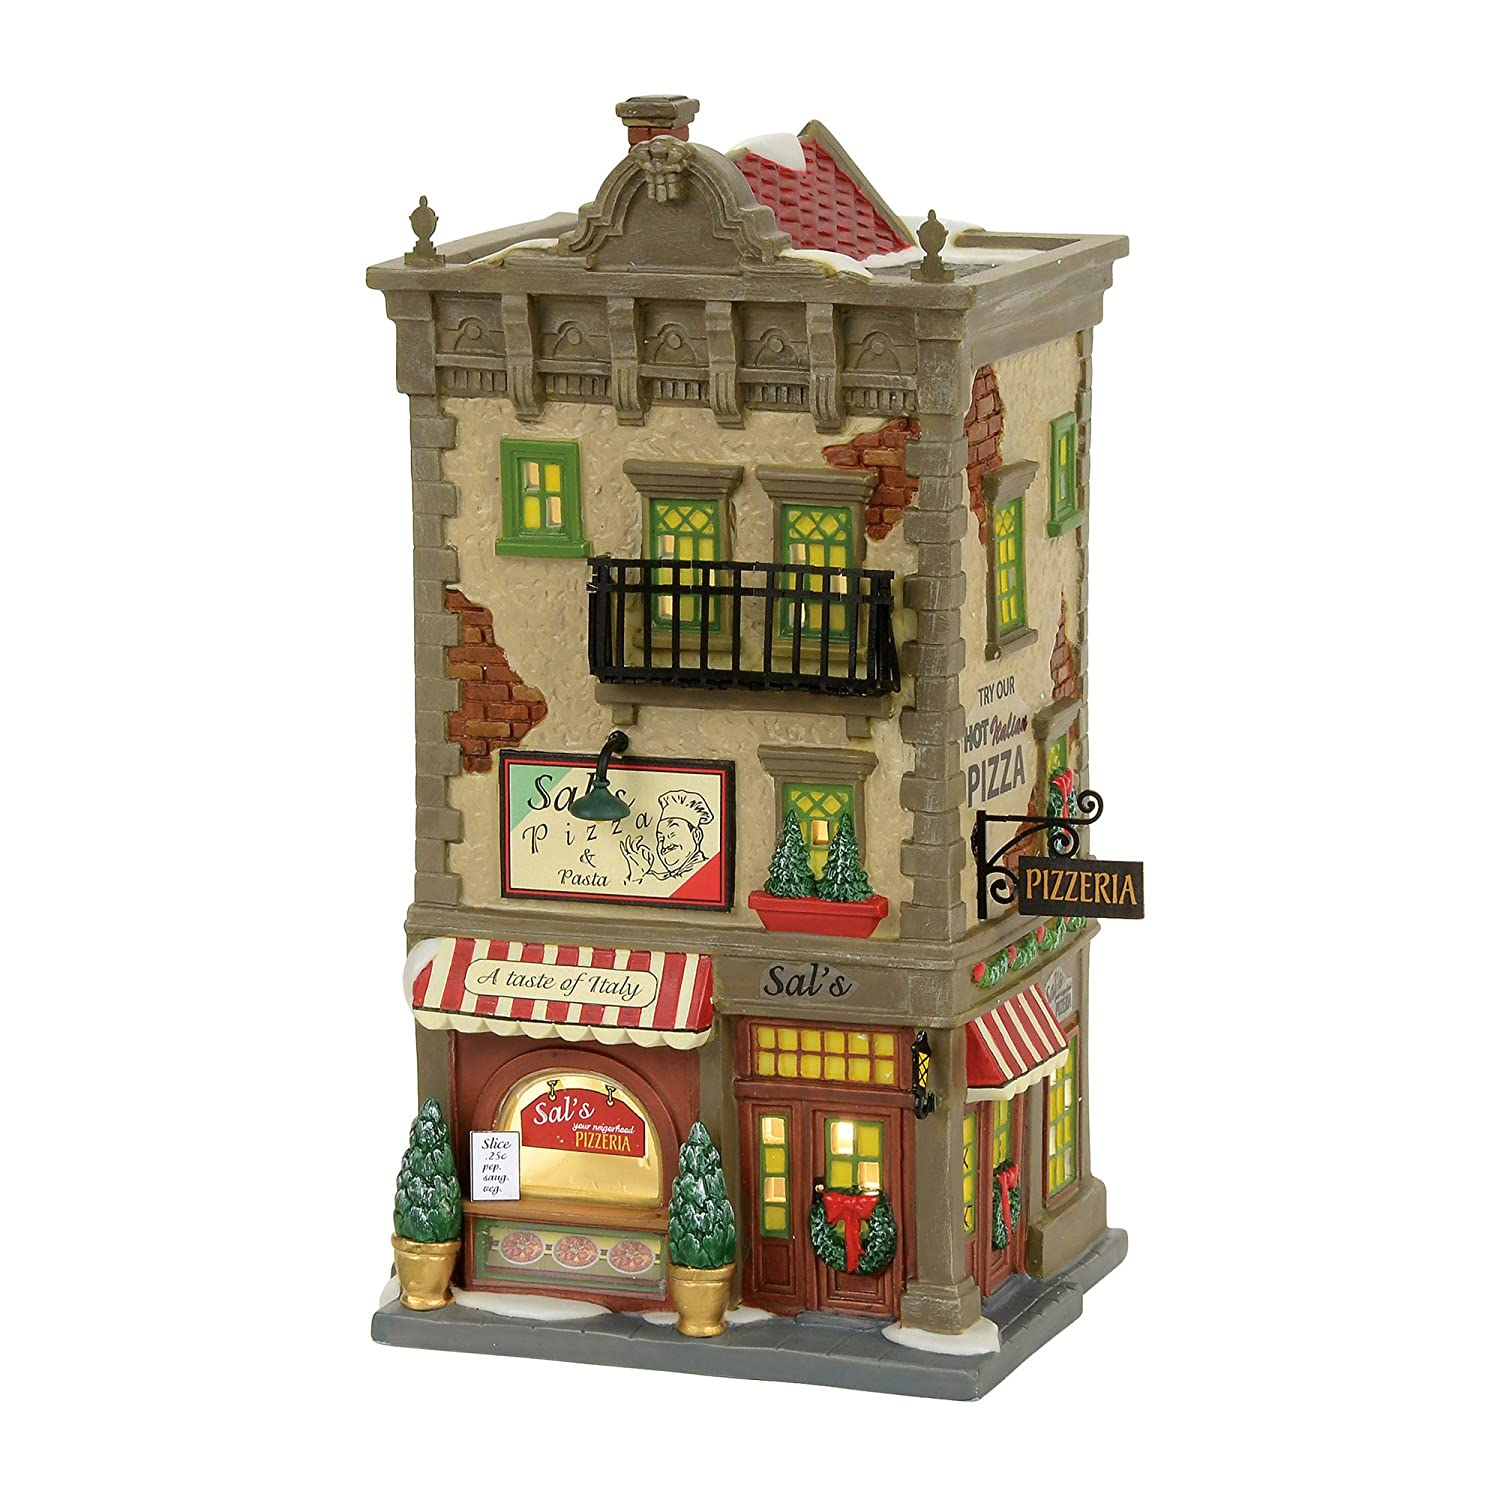 Department 56 Christmas in The City Sal's Pizza and Pasta Village Lit Building Multicolor